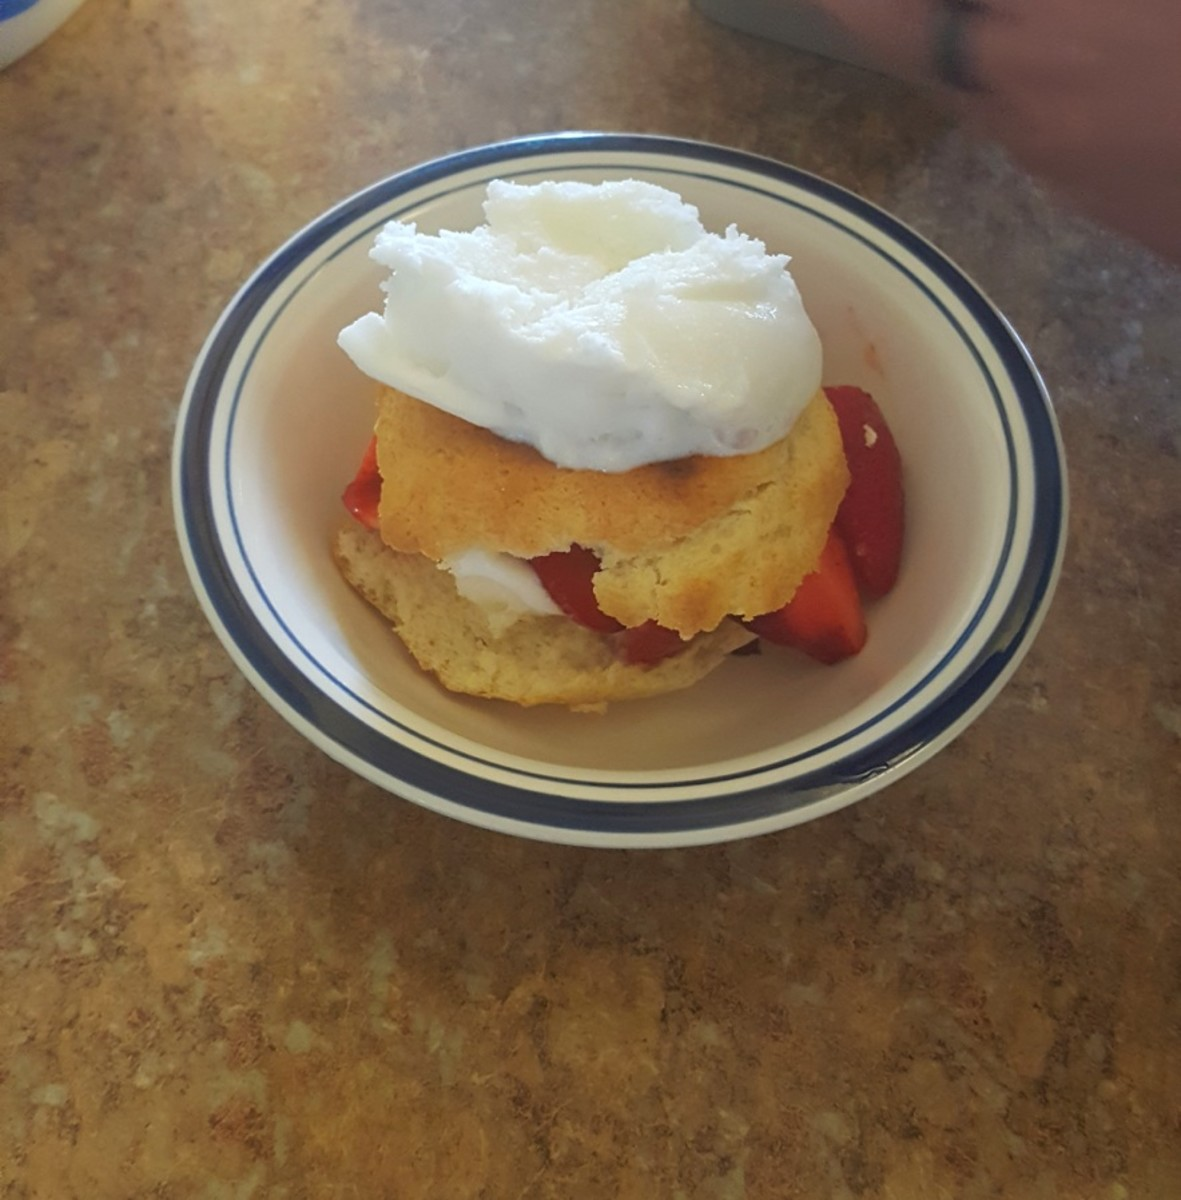 Place the other shortcake half on top and add a scoop of frozen yogurt.